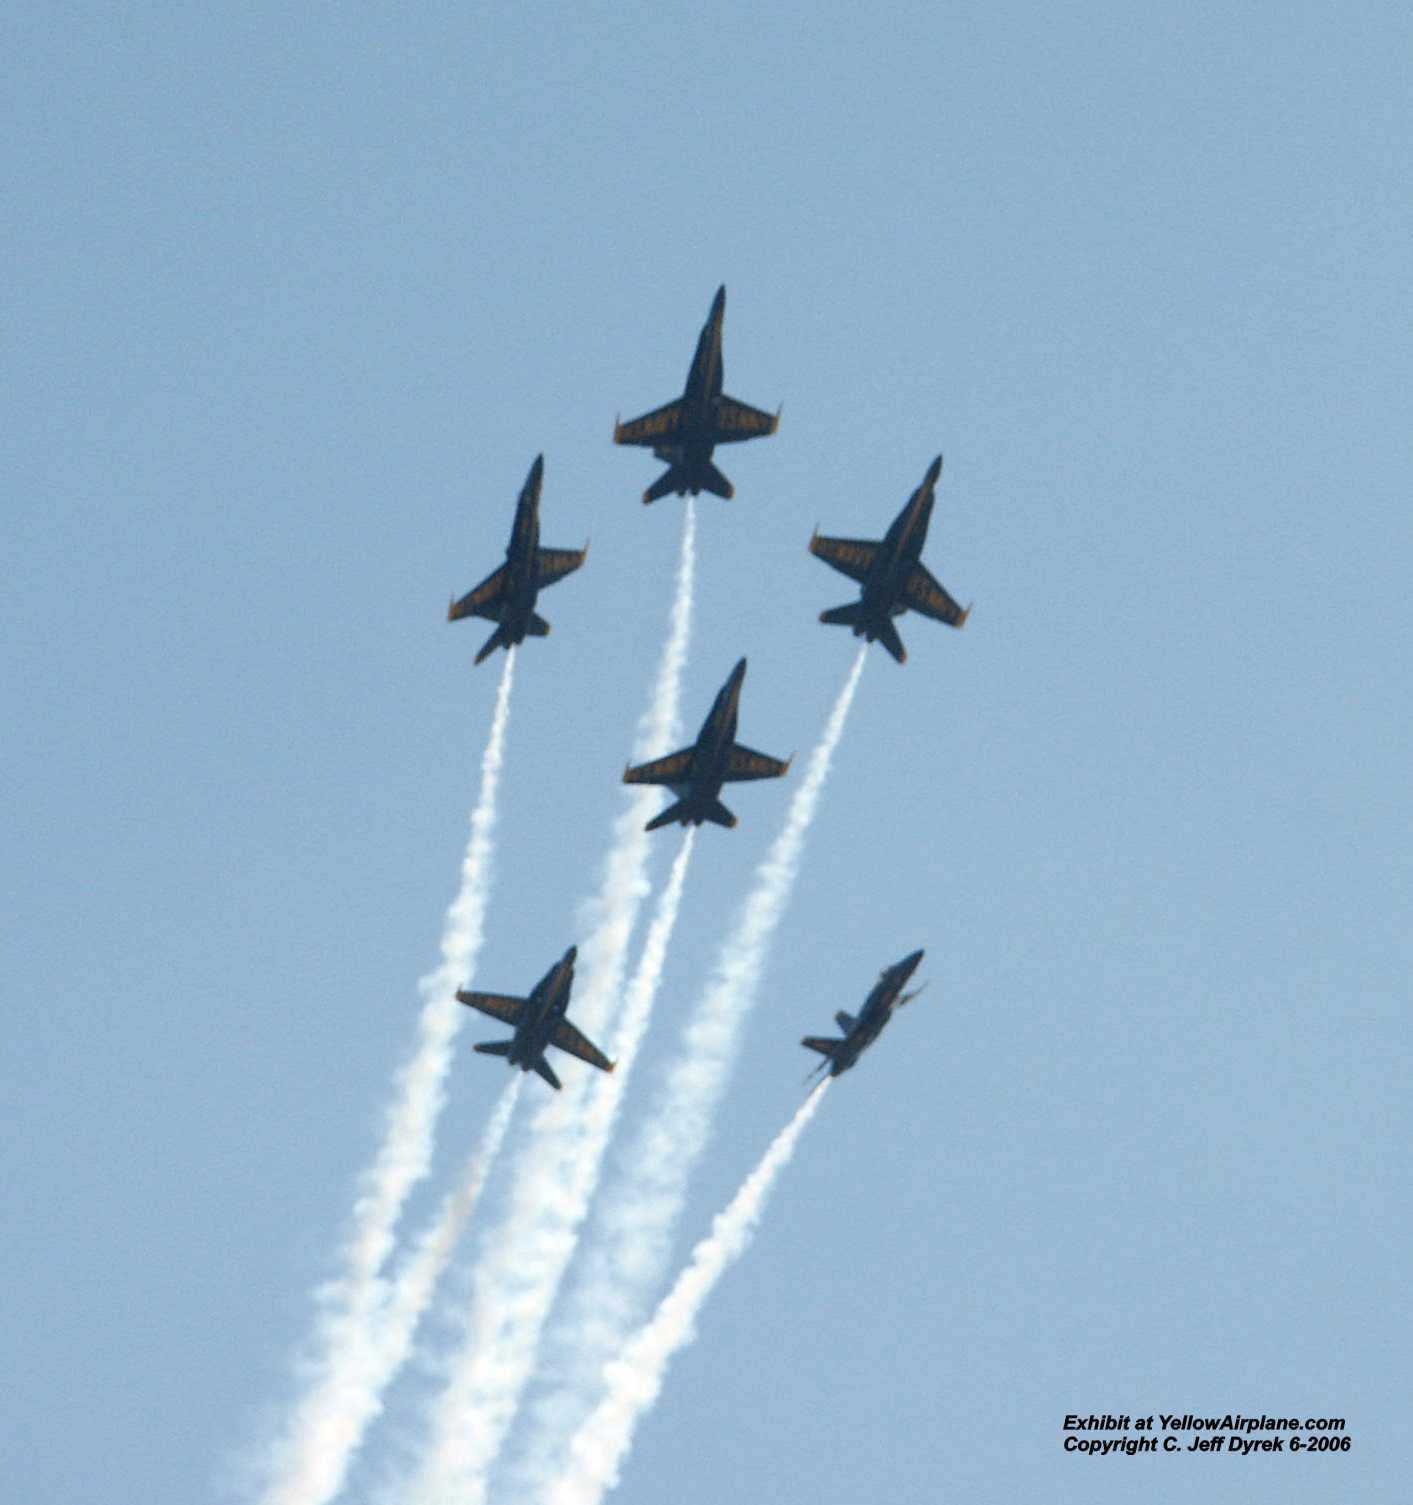 These Beautiful Blue Angel Dream Airplanes look great in this photo.